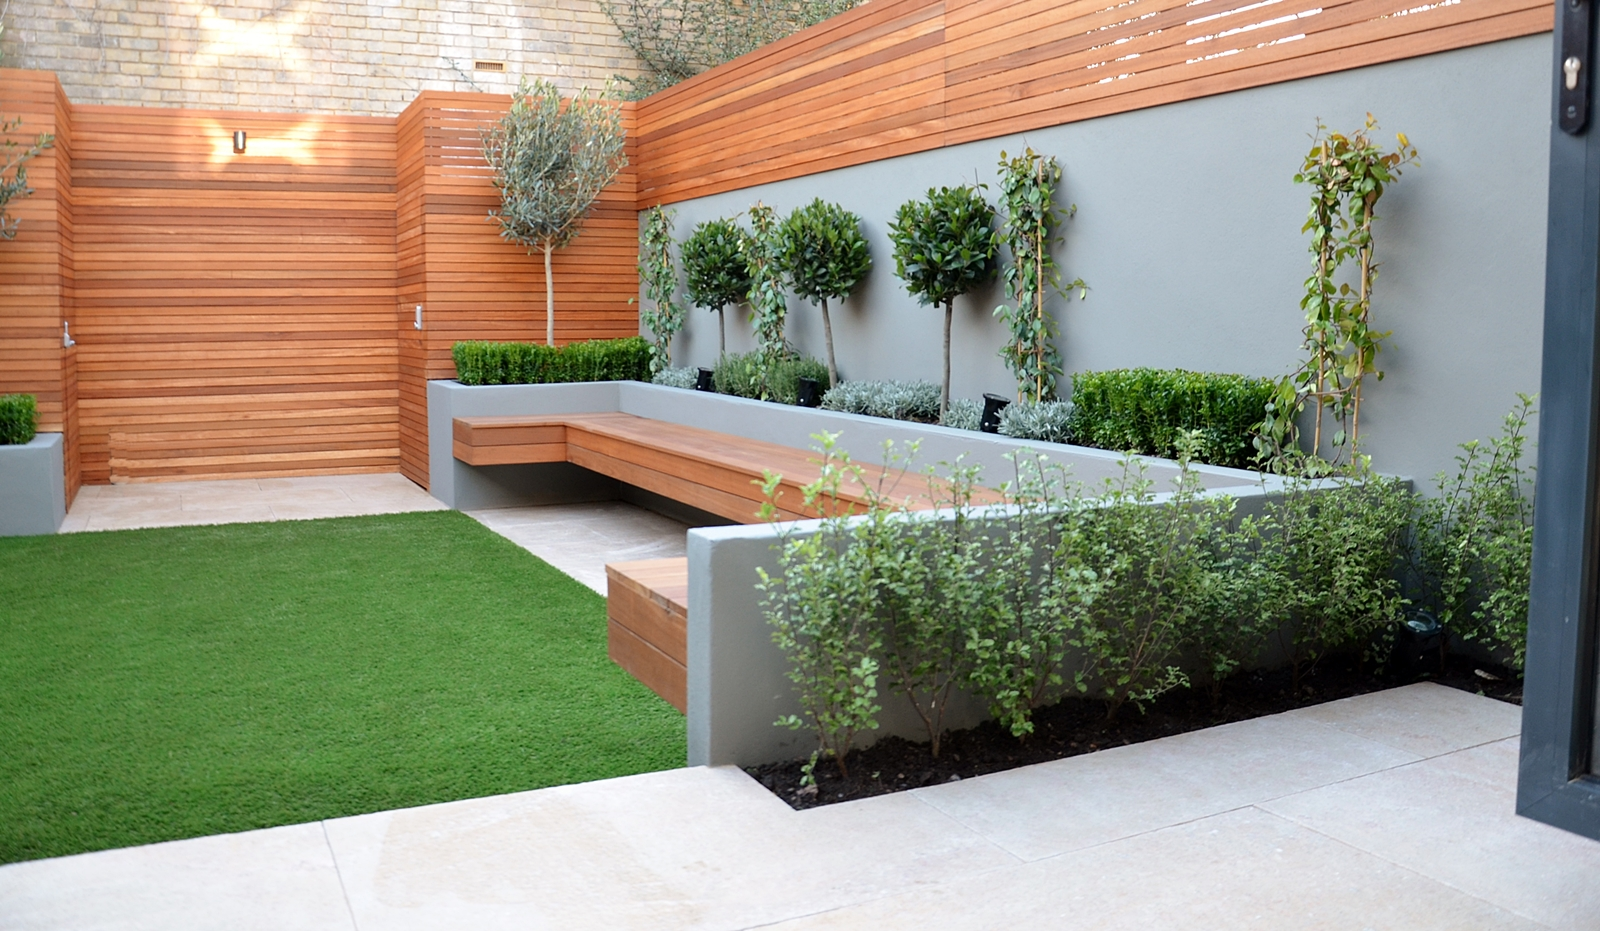 Clapham and london garden design 2015 for Modern garden design